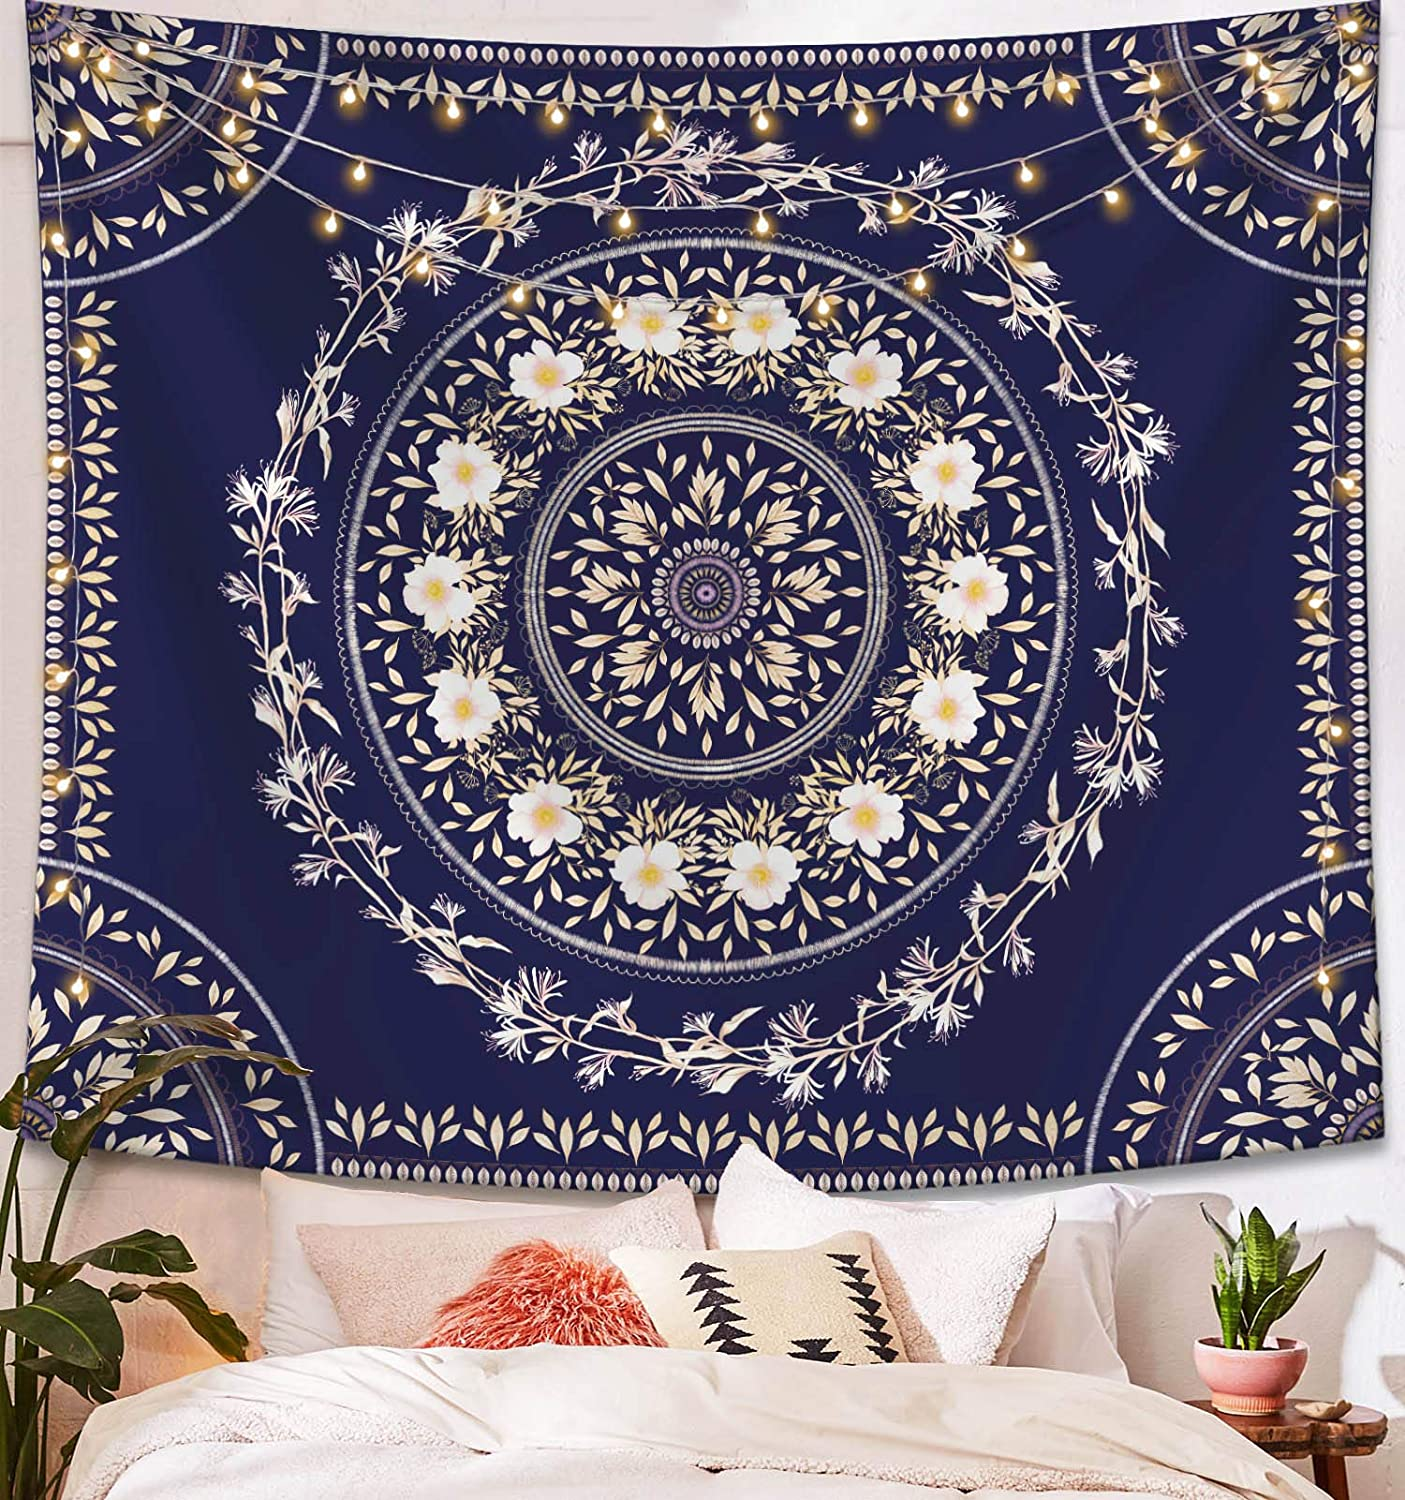 Lifeel Blue Bohemian Tapestry Wall Hanging, Mandala Floral Medallion Hippie Tapestry with White Aesthetic Wreath Design, Navy Wall Decor Blanket for Bedroom Home Dorm, Small 50×60 inches